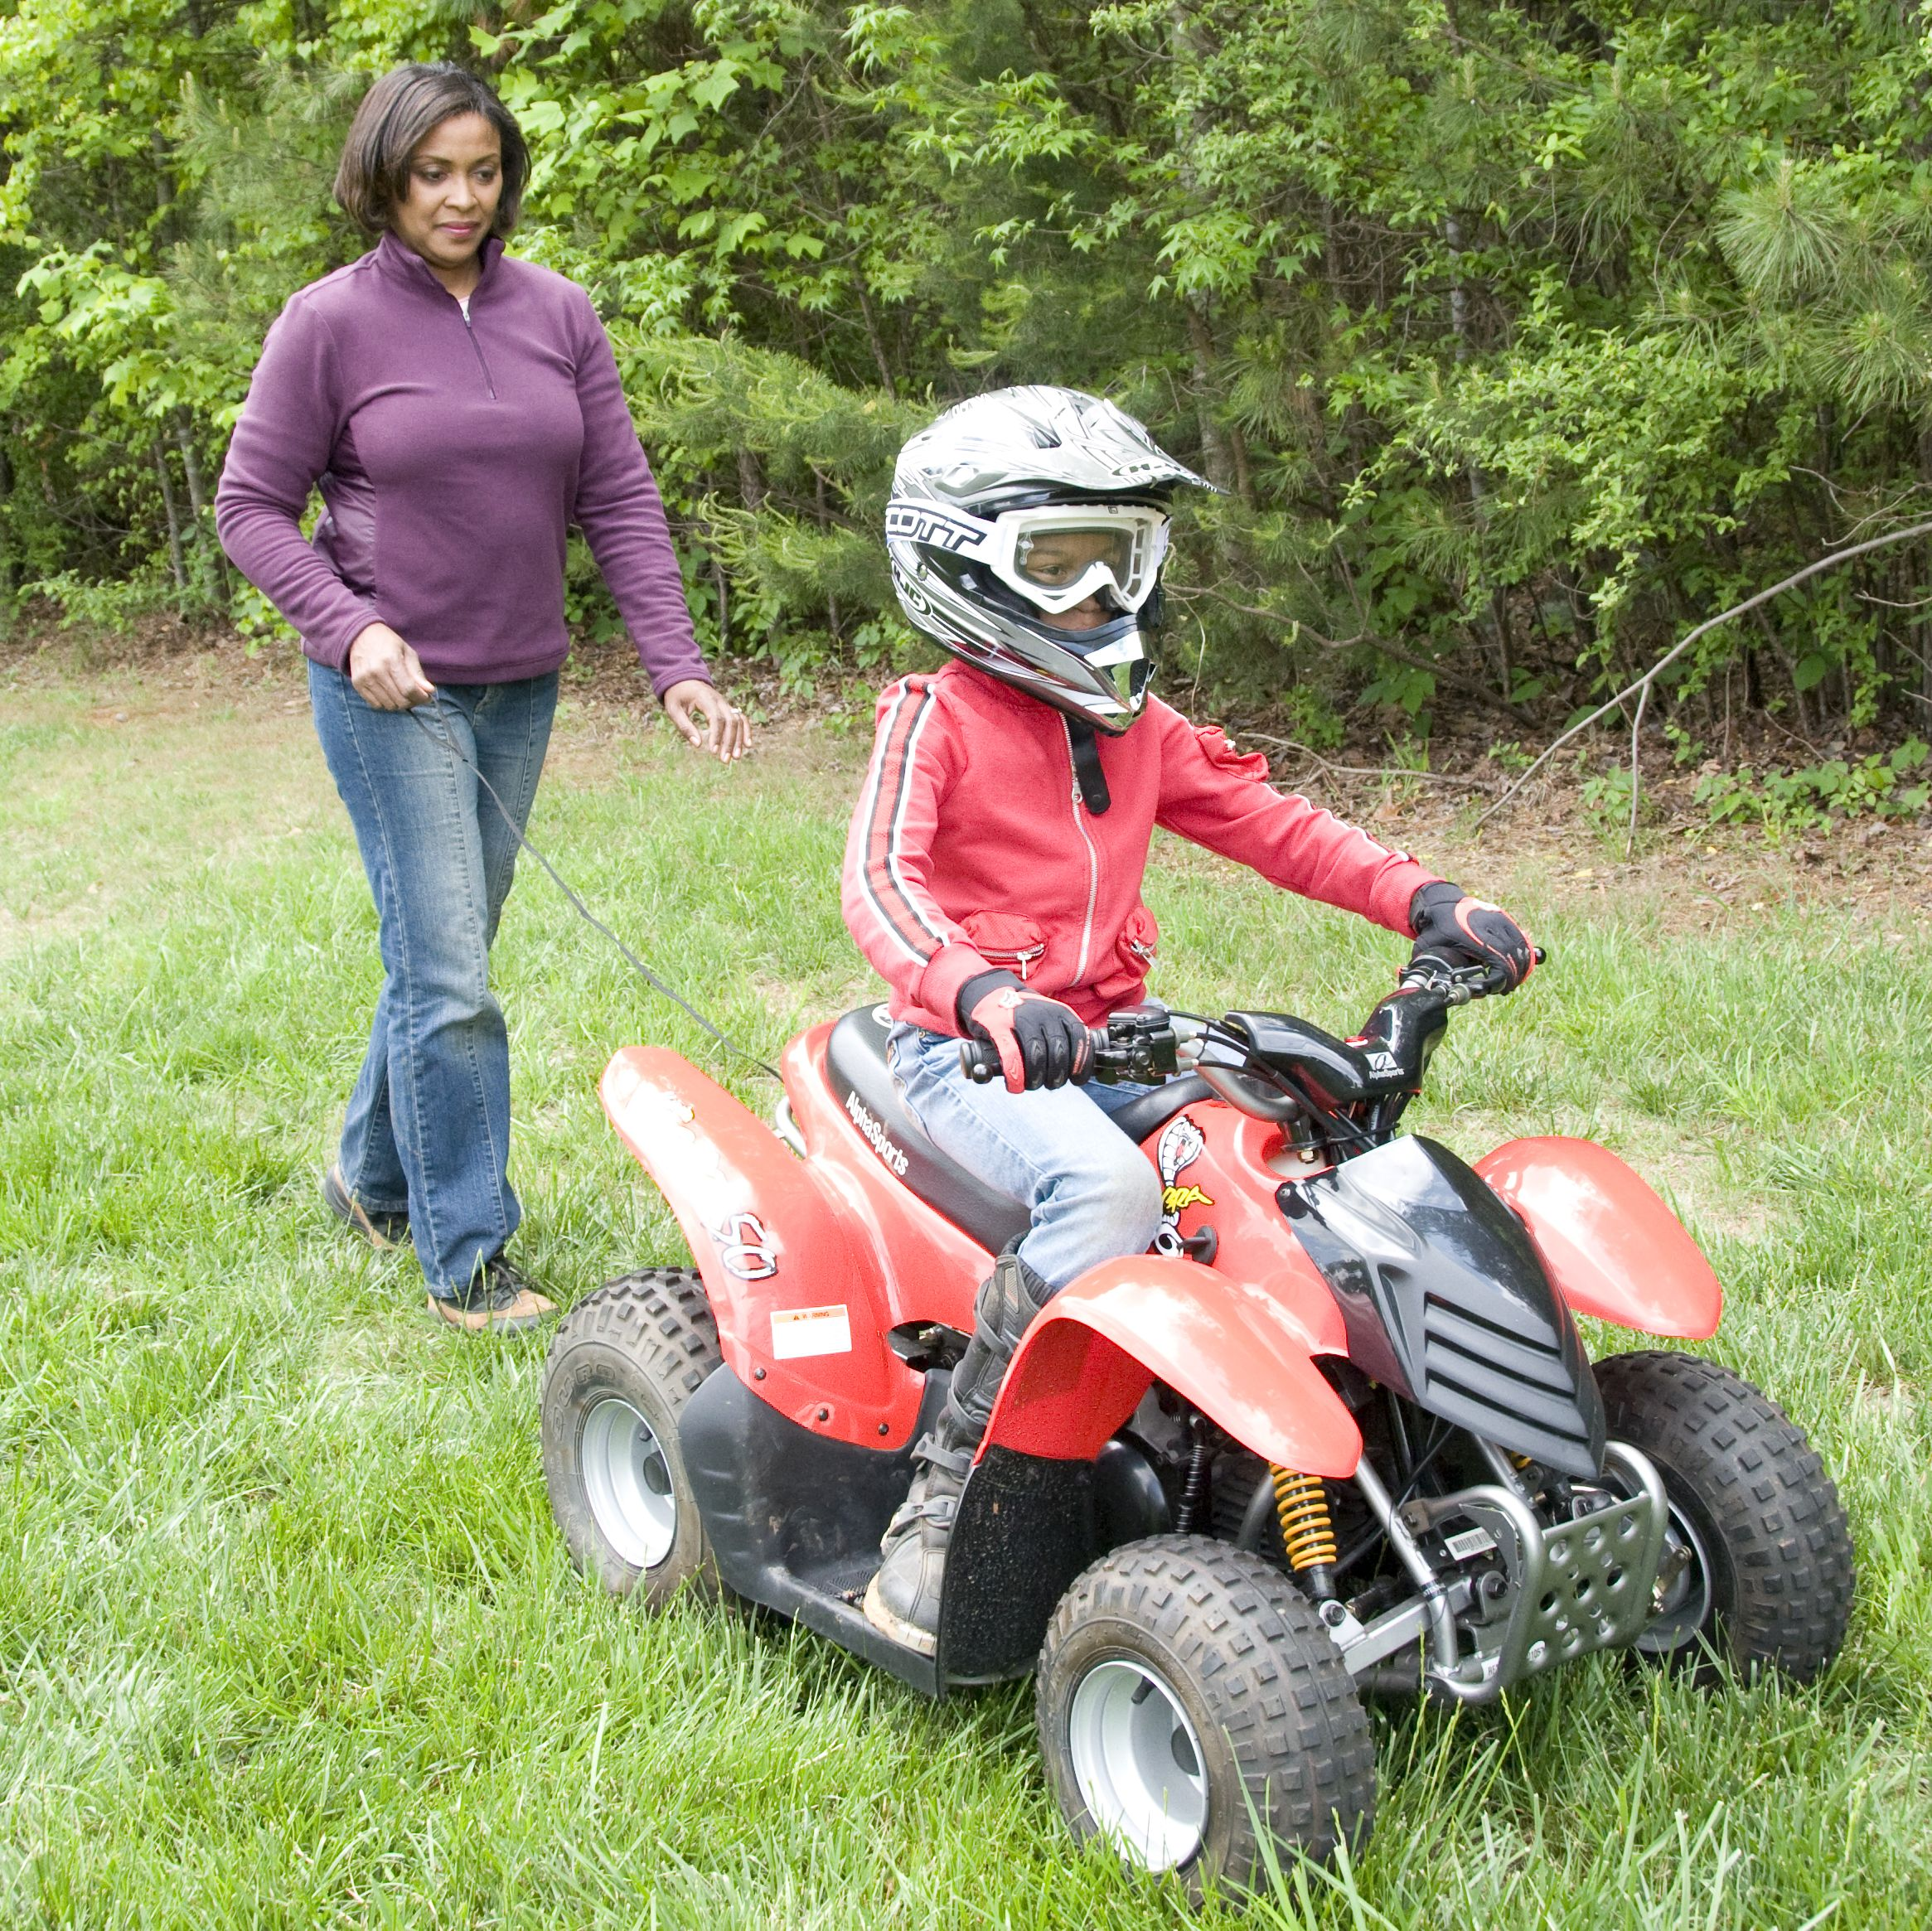 ASI ATV Safety Course - Child